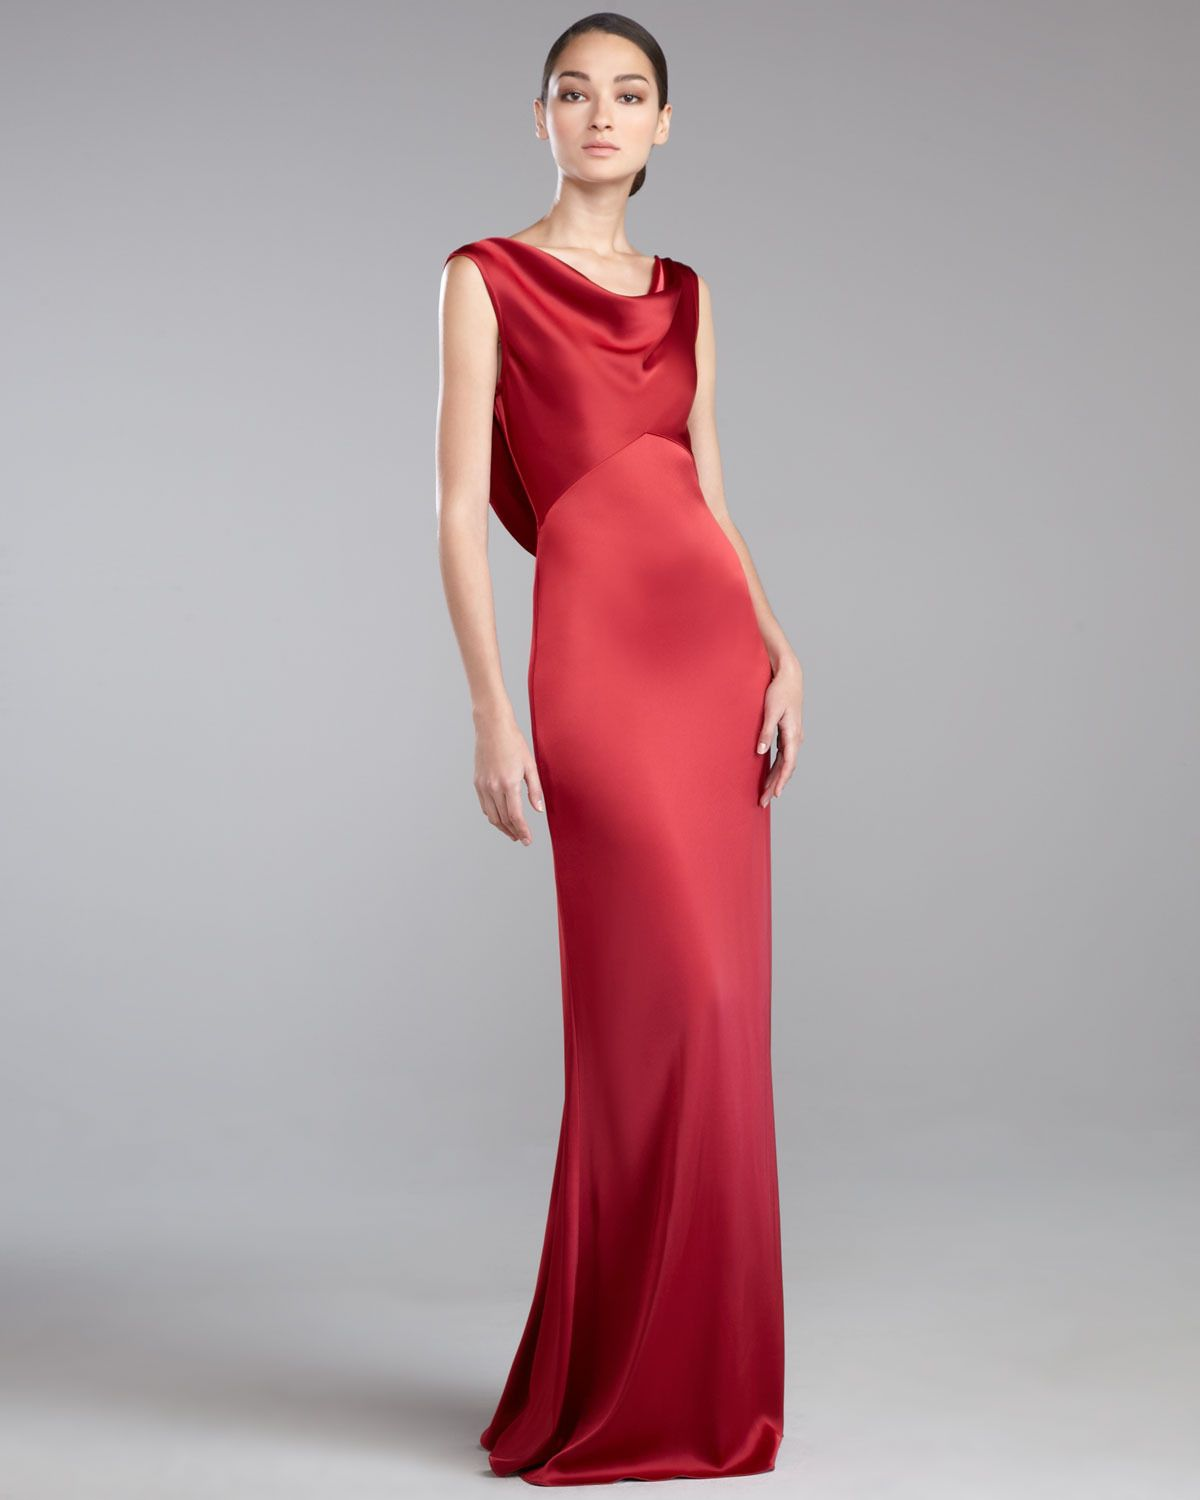 Gojee - Liquid Satin Cowl-Neck Gown by St. John   Net a porter Style ...